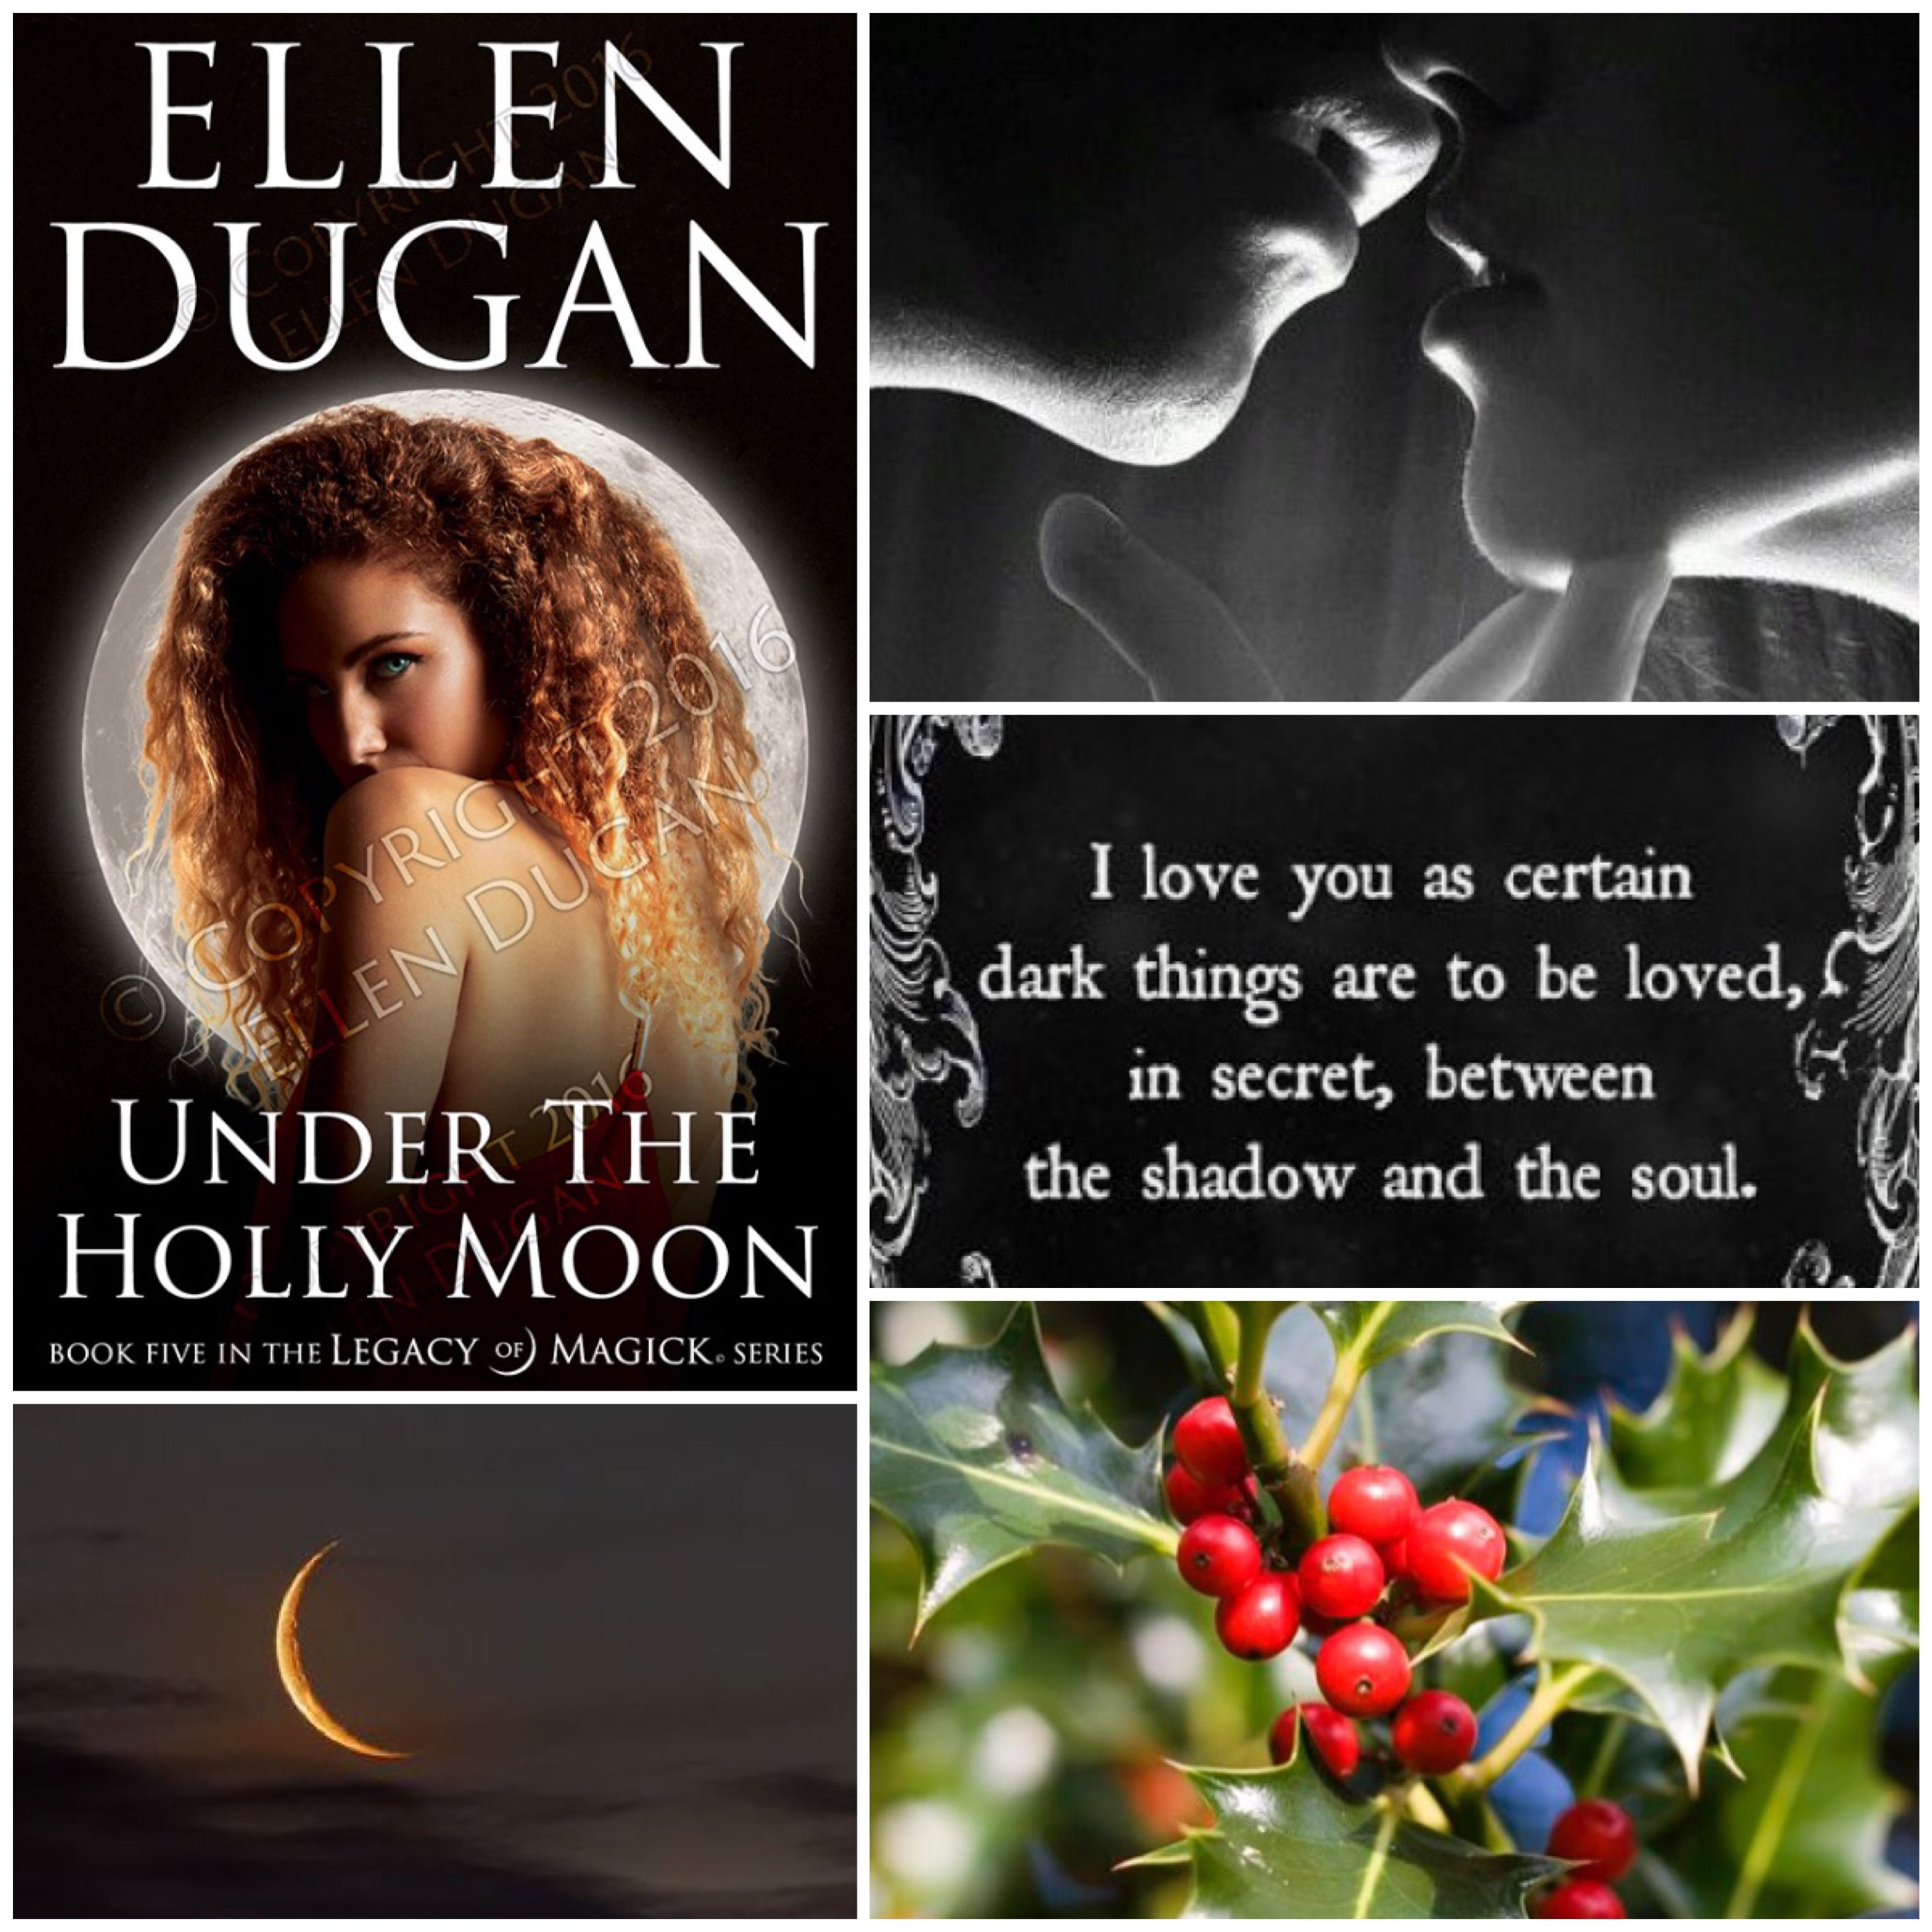 Mood Board For My Newest Novel Under The Holly Moon Book 5 In The Legacy Of Magick Series It S Sure To Add A Little Heat To These D Moon Book Magick Books